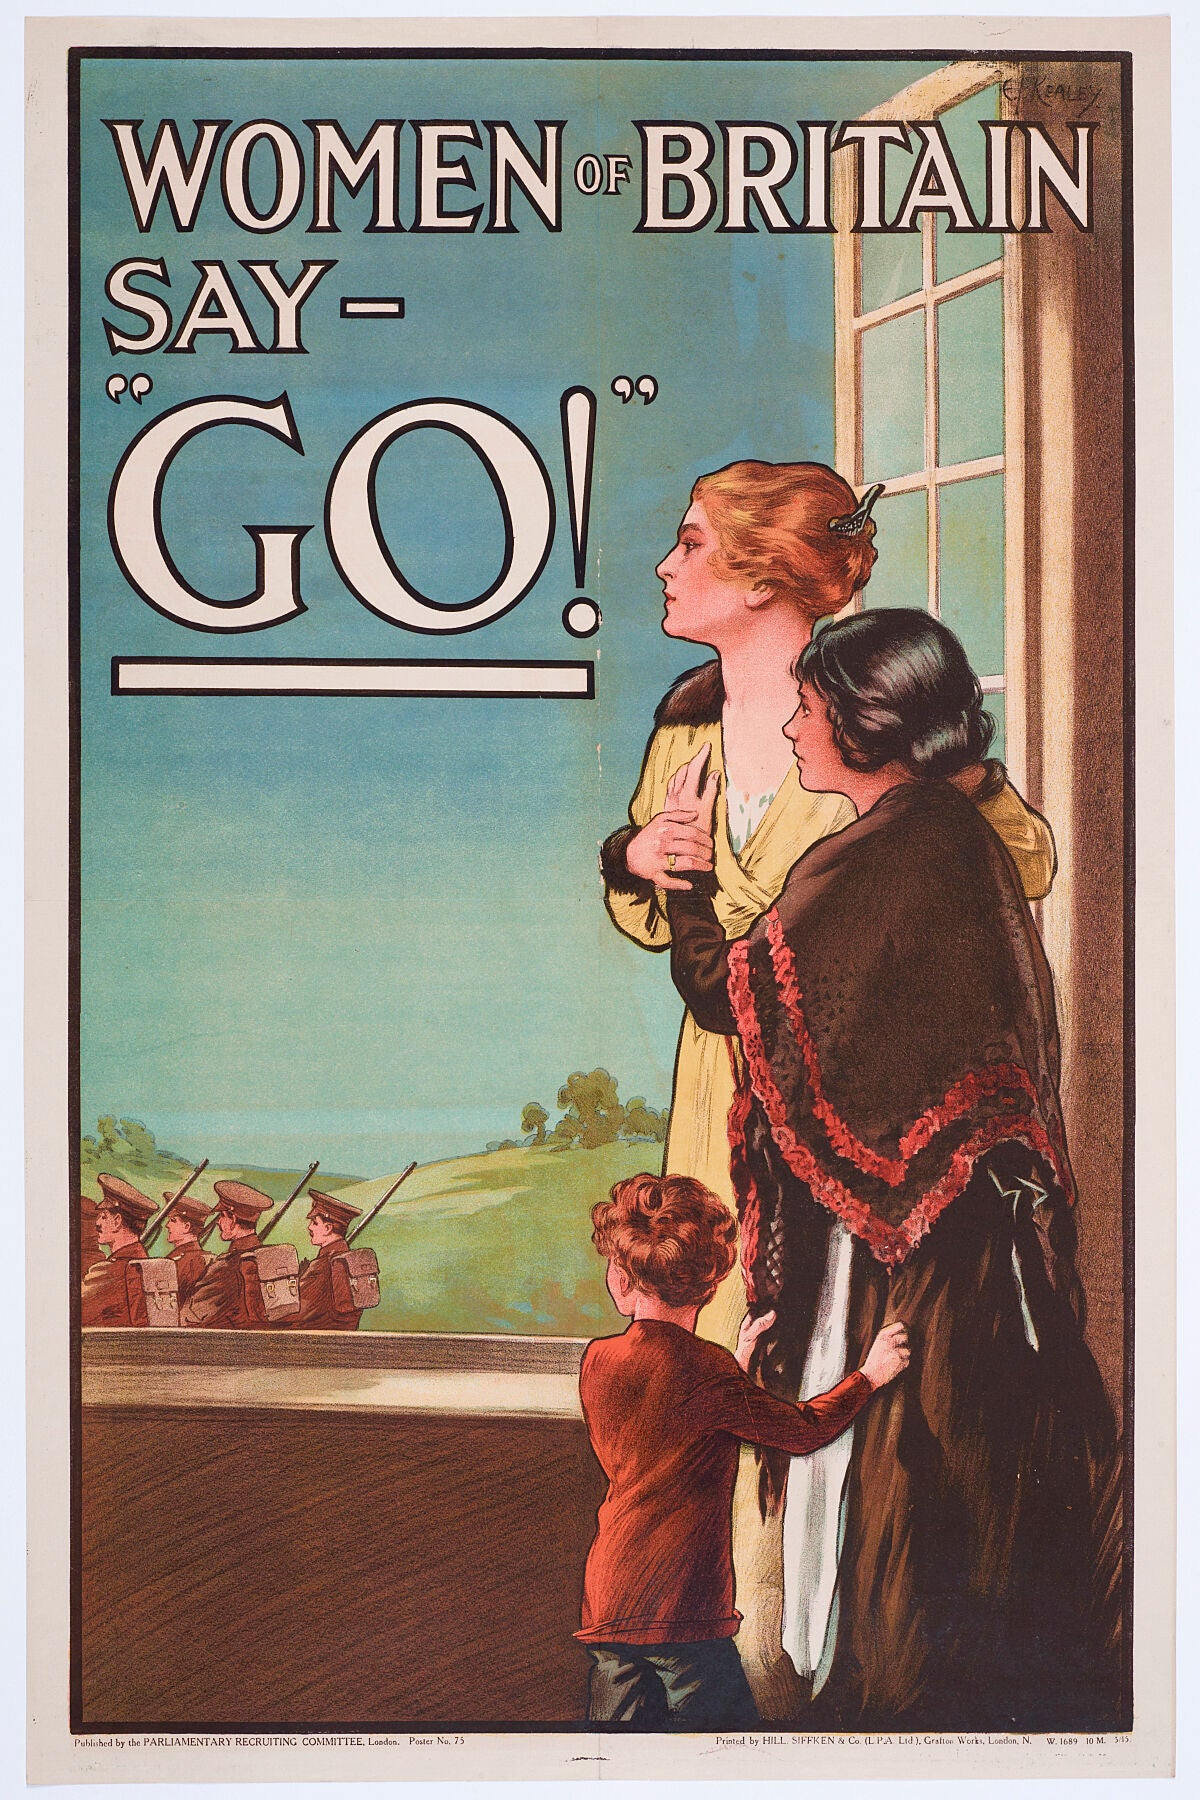 Poster, 'Women of Britain say - Go  Production Parliamentary Recruiting Committee; publisher; May 1915, United Kingdom